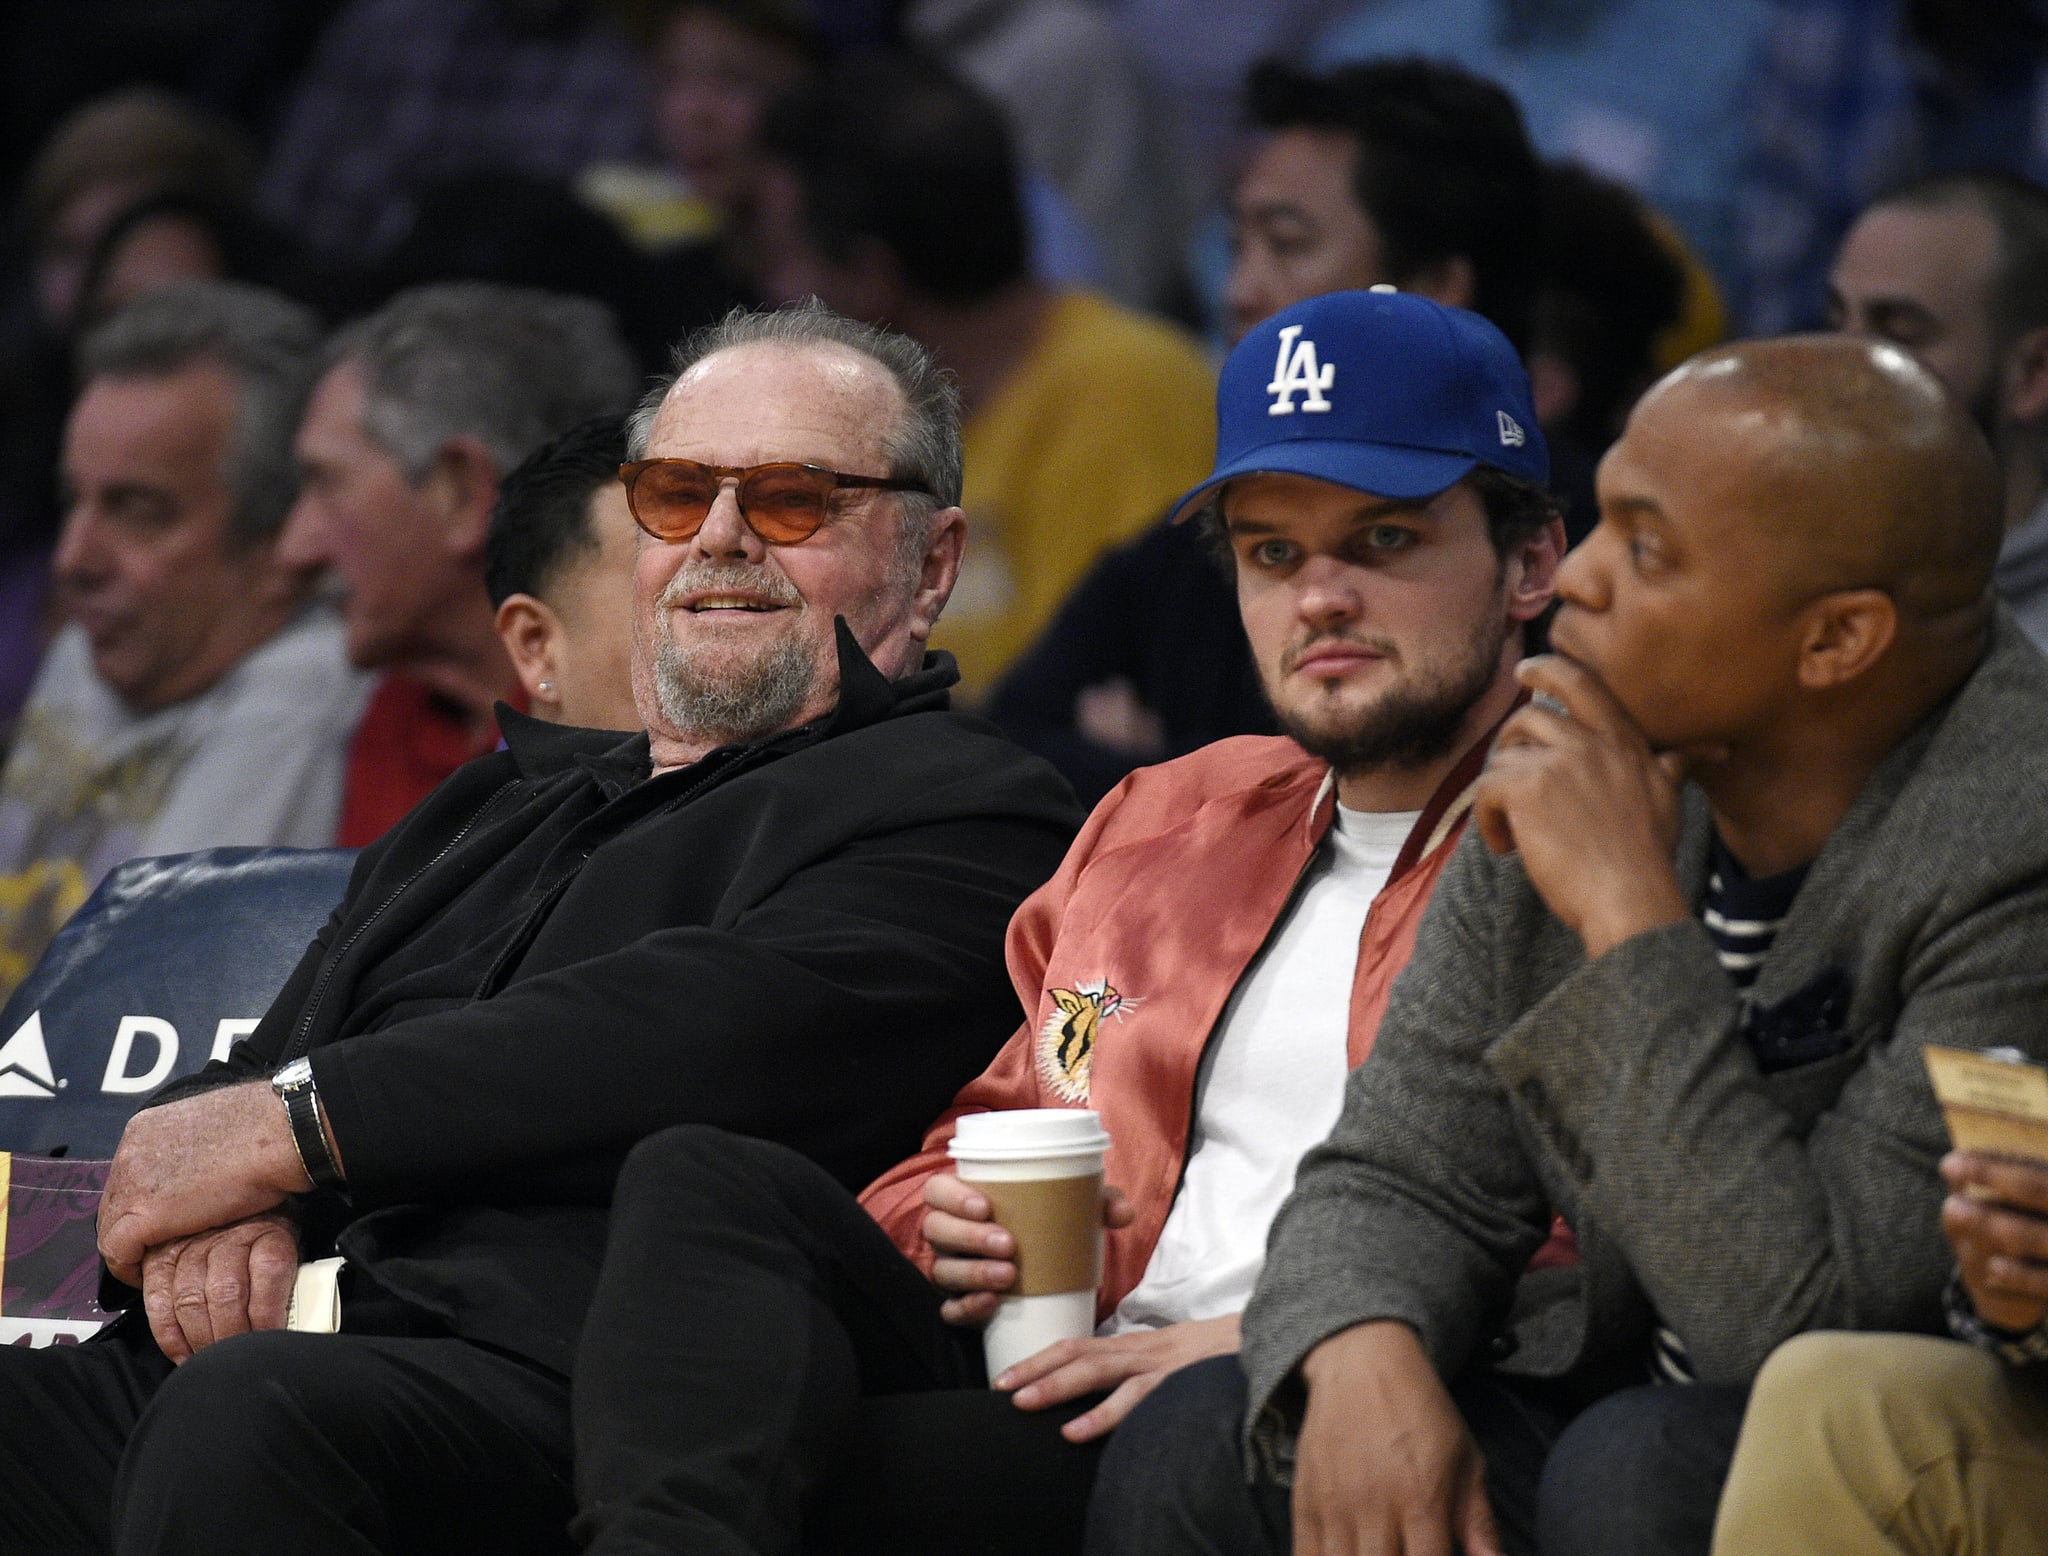 Jack Nicholson And Son Ray At Lakers Game March 2017 Popsugar Celebrity Uk Photo 2 Do me a big favour and watch it, tell everyone you know about it, then press play on it. son ray at lakers game march